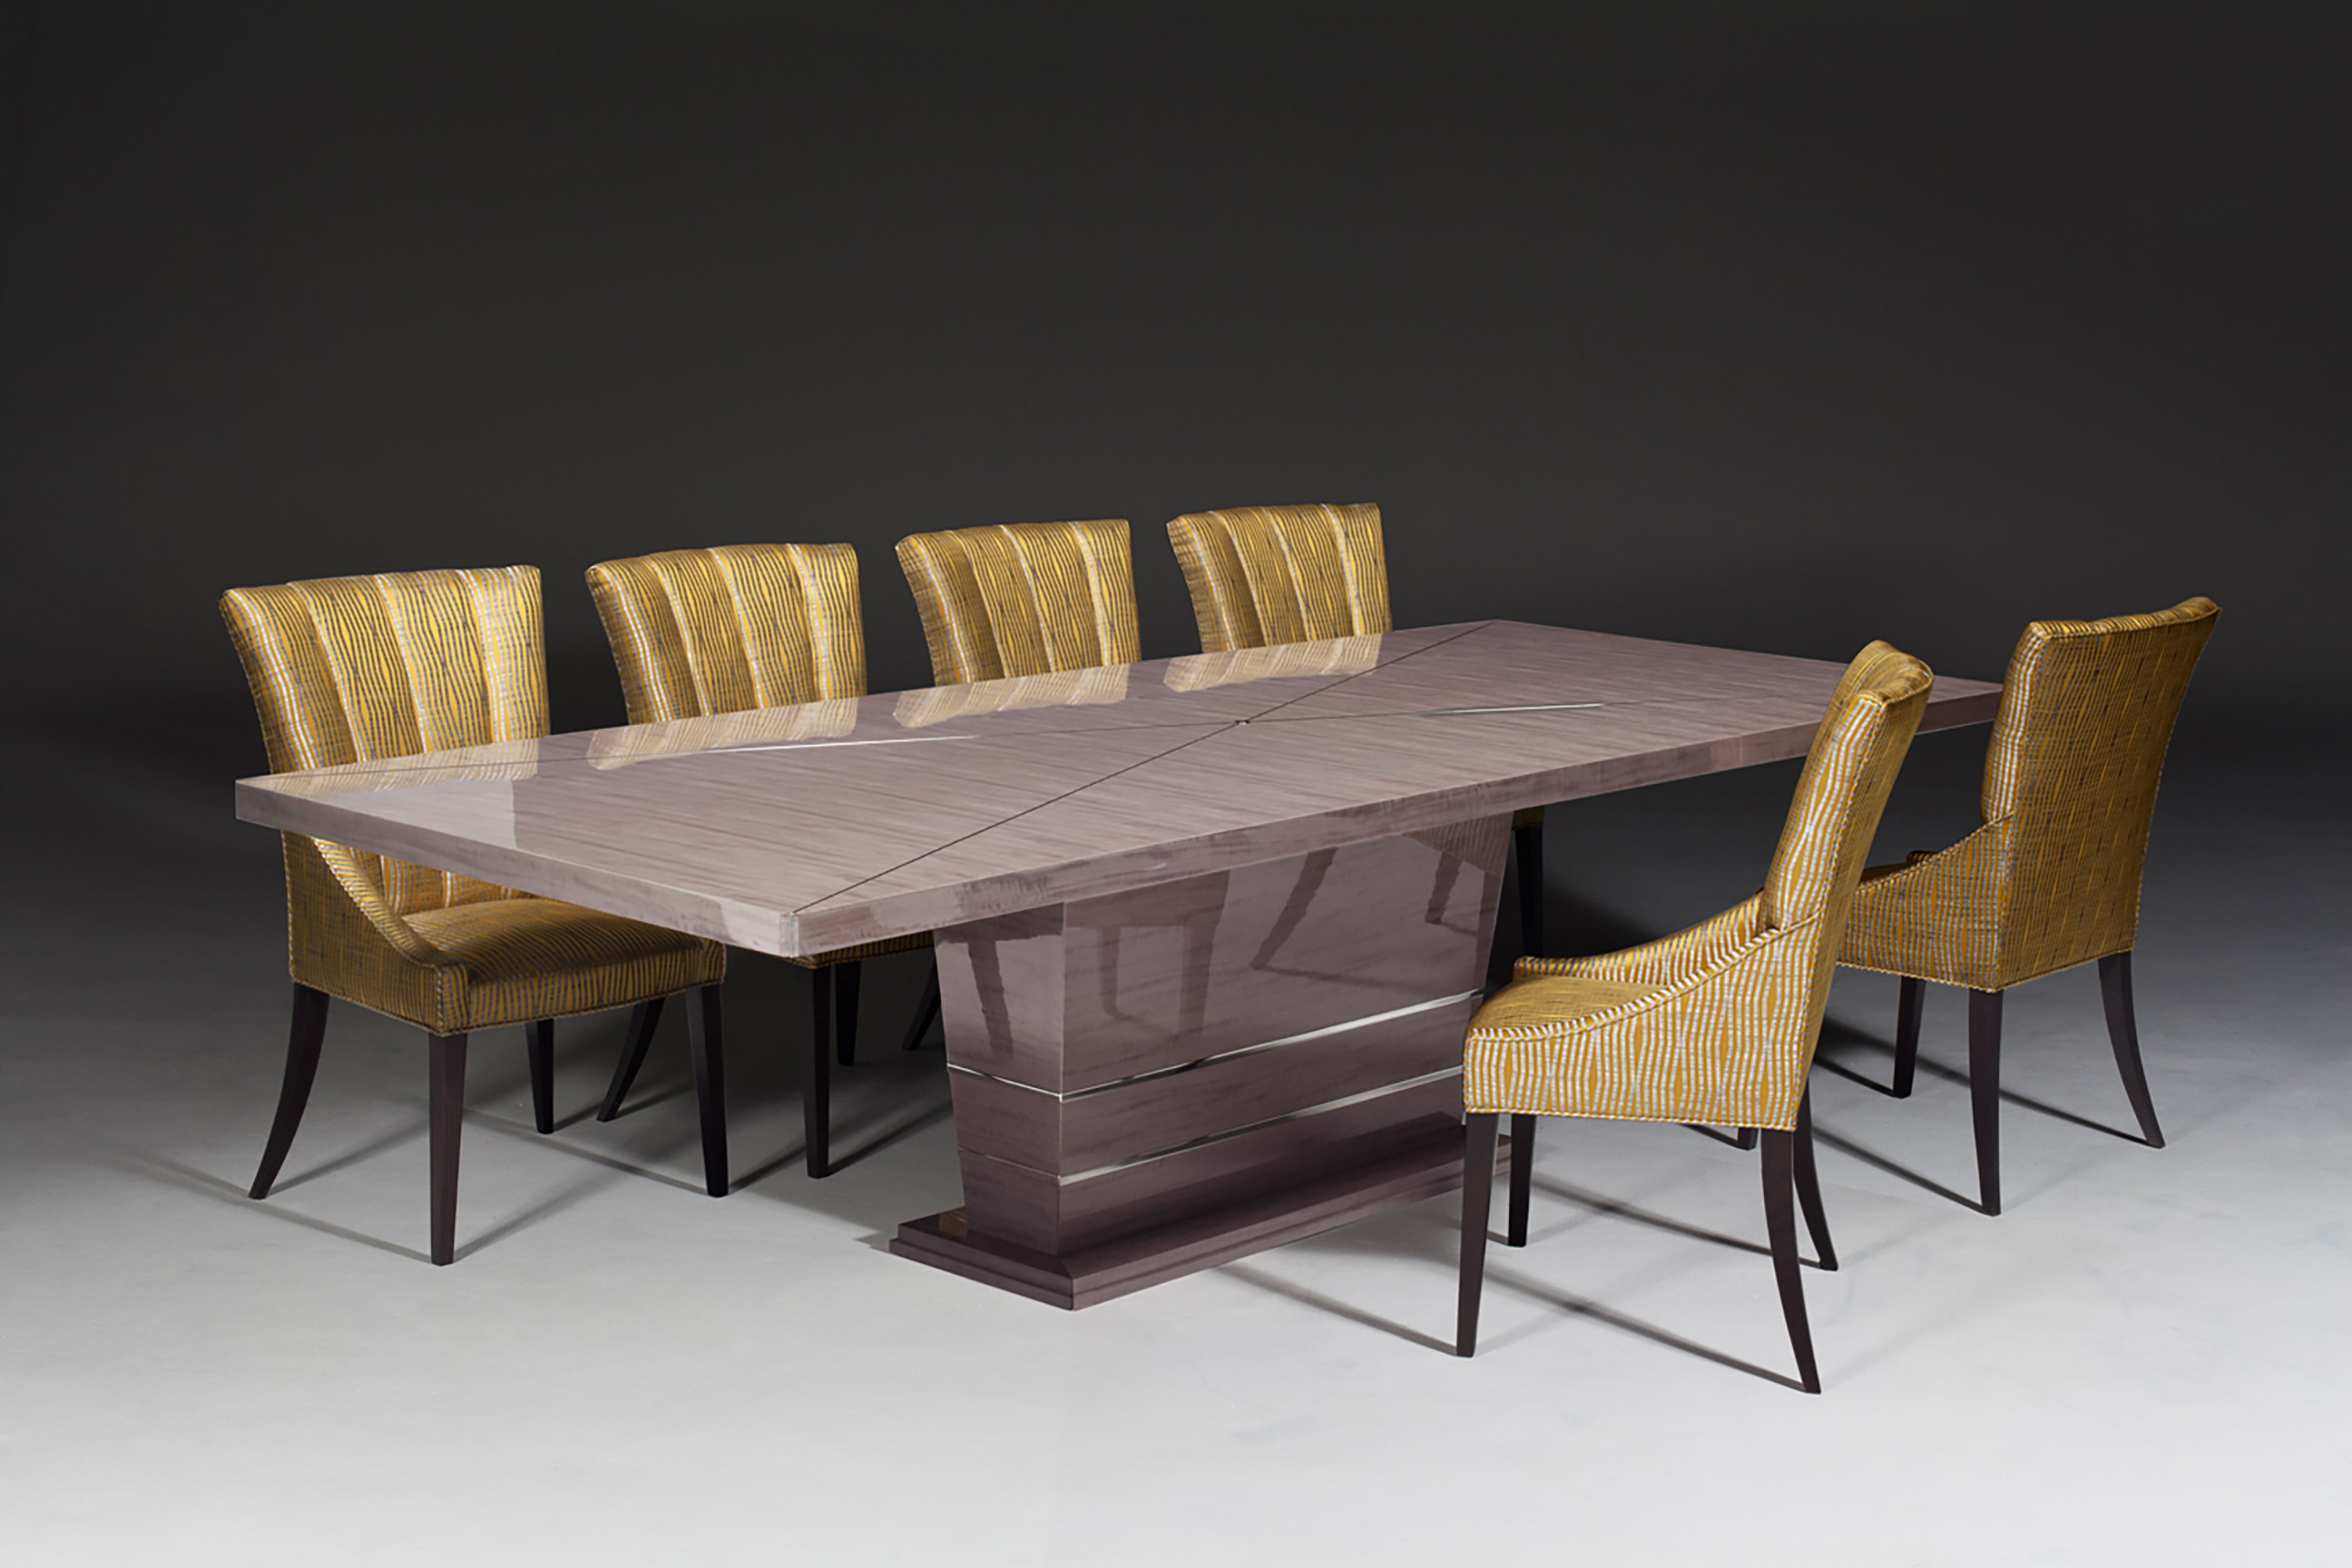 Serafina Dining Table by Michael Northcroft